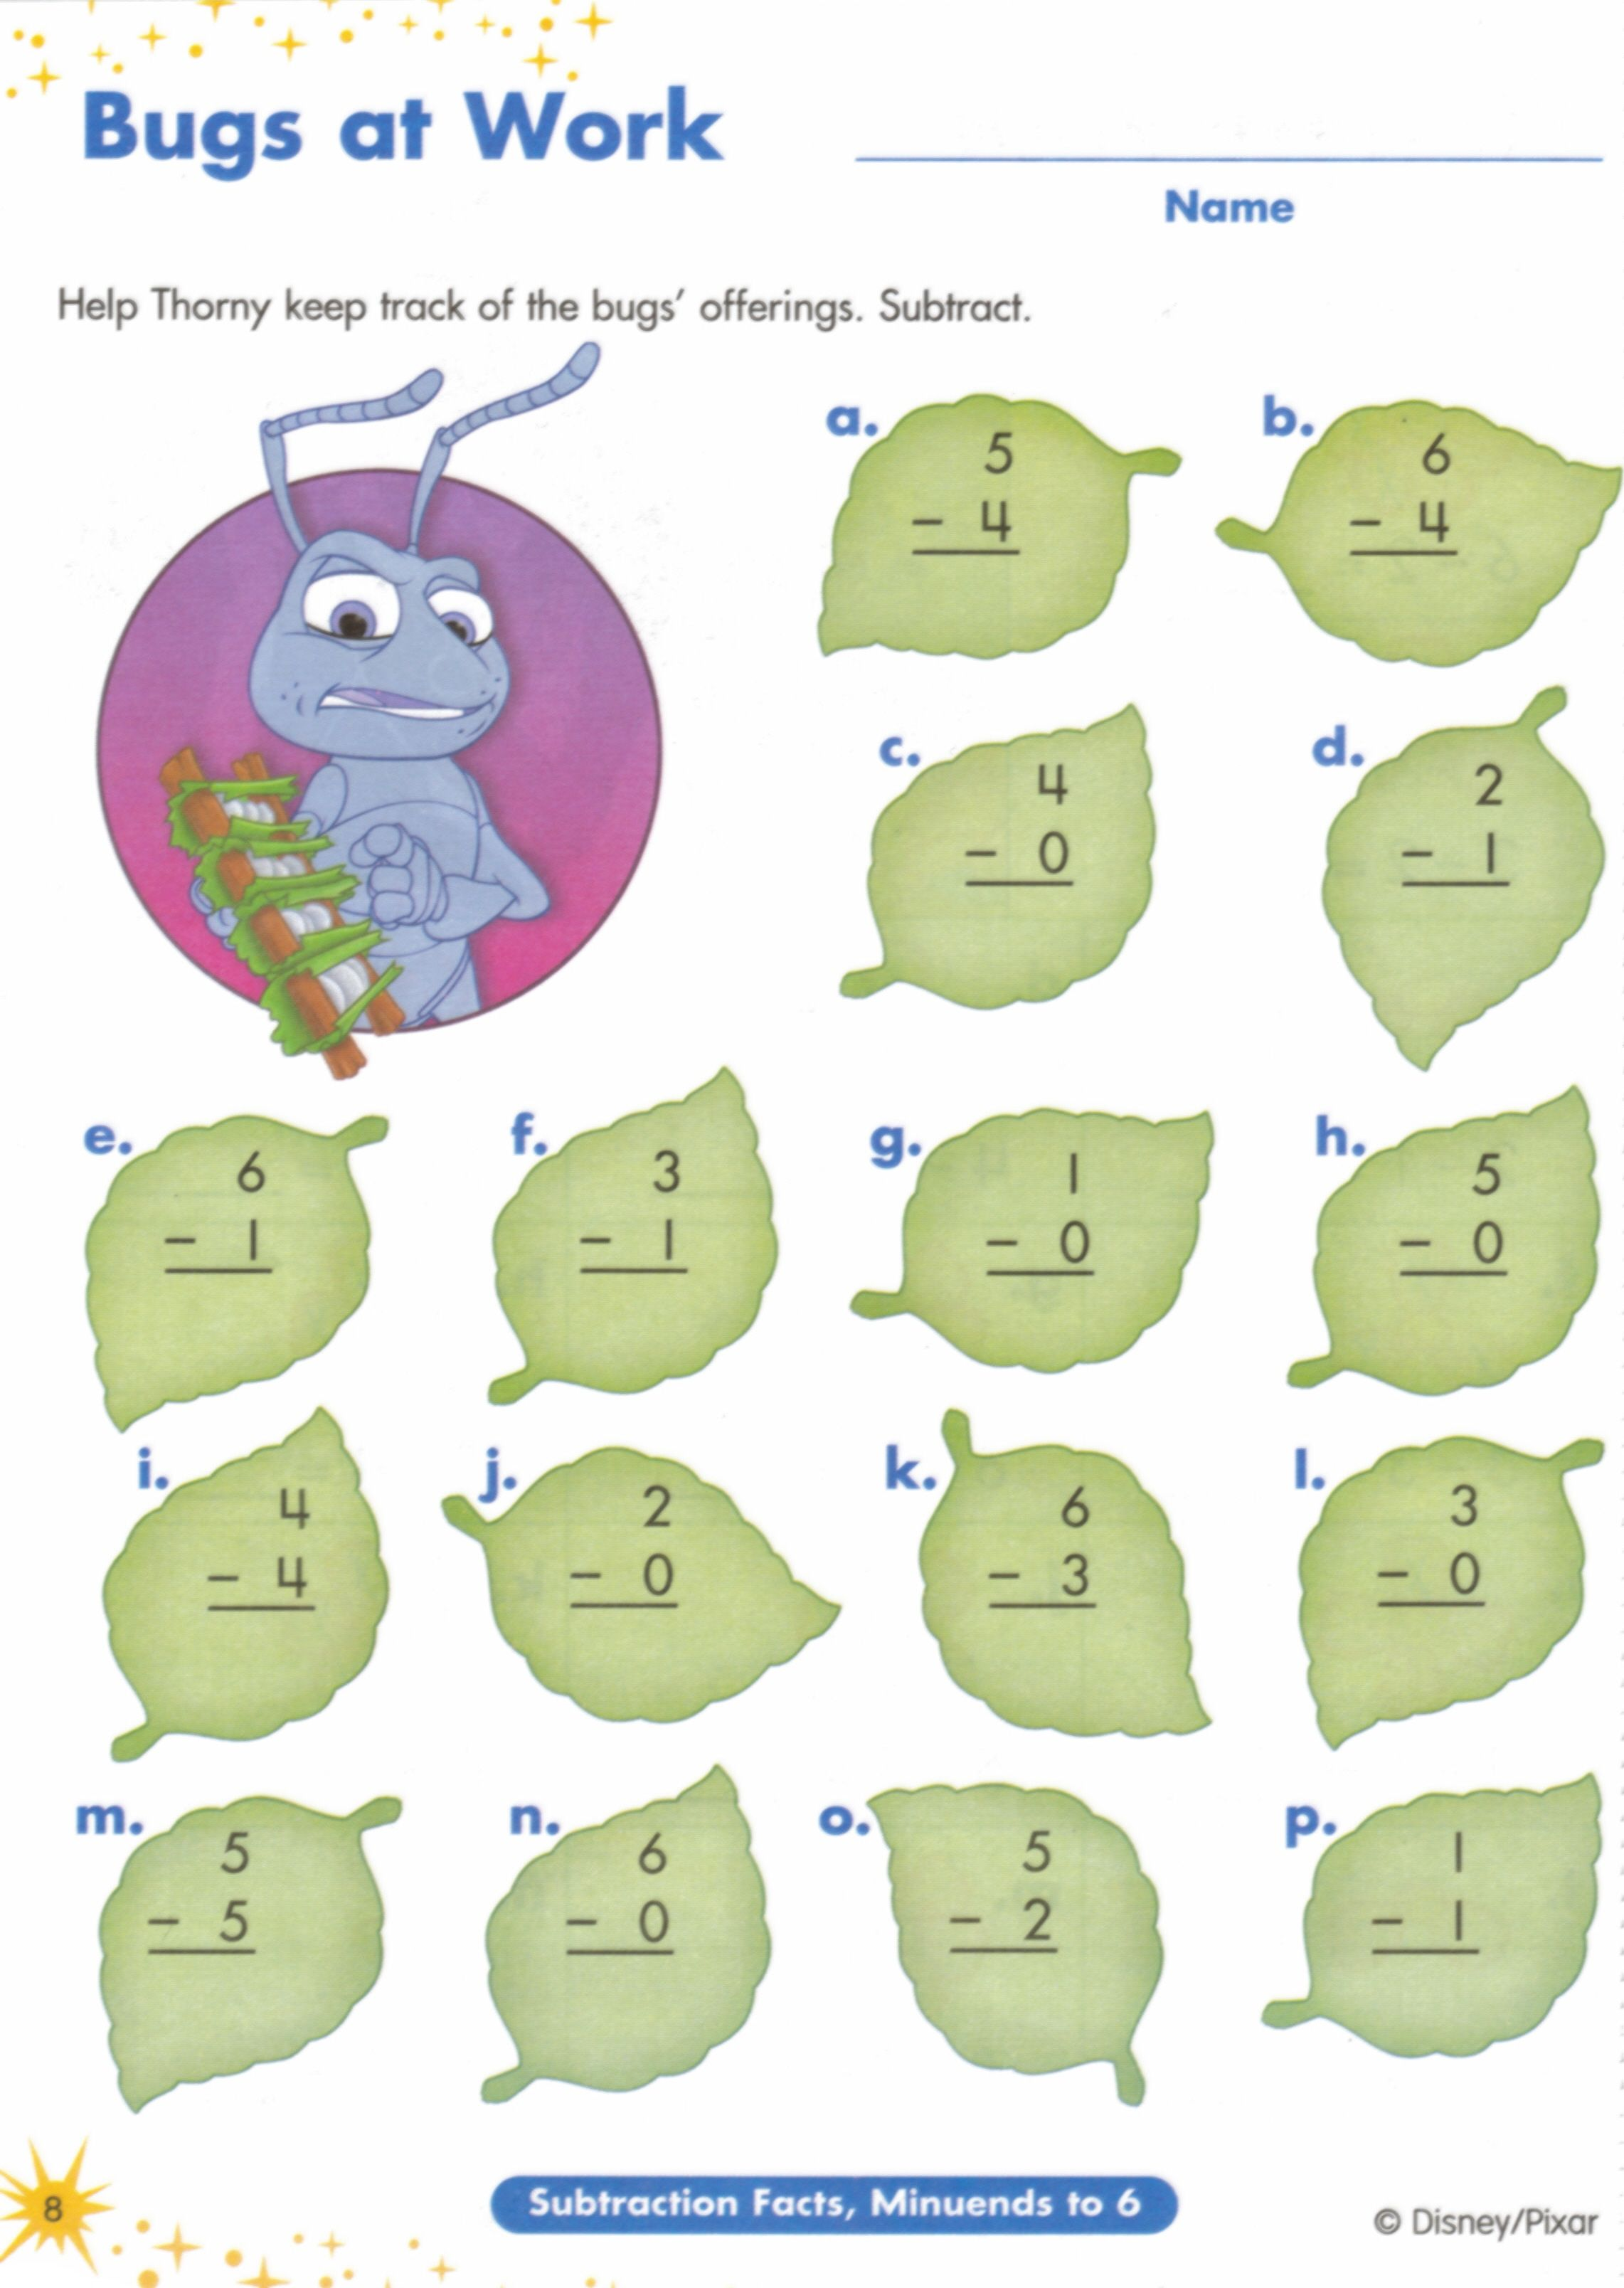 Proatmealus  Unusual  Images About Worksheets On Pinterest  Fun Facts For Kids  With Glamorous  Images About Worksheets On Pinterest  Fun Facts For Kids Earth Day Worksheets And Jungles With Lovely Punctuation Worksheets Th Grade Also Absolute Value Problems Worksheet In Addition Chemical Reactions And Equations Worksheet And Worksheet Solving Exponential Equations As Well As Free Dr Seuss Worksheets Additionally Angle Measurement Worksheets From Pinterestcom With Proatmealus  Glamorous  Images About Worksheets On Pinterest  Fun Facts For Kids  With Lovely  Images About Worksheets On Pinterest  Fun Facts For Kids Earth Day Worksheets And Jungles And Unusual Punctuation Worksheets Th Grade Also Absolute Value Problems Worksheet In Addition Chemical Reactions And Equations Worksheet From Pinterestcom